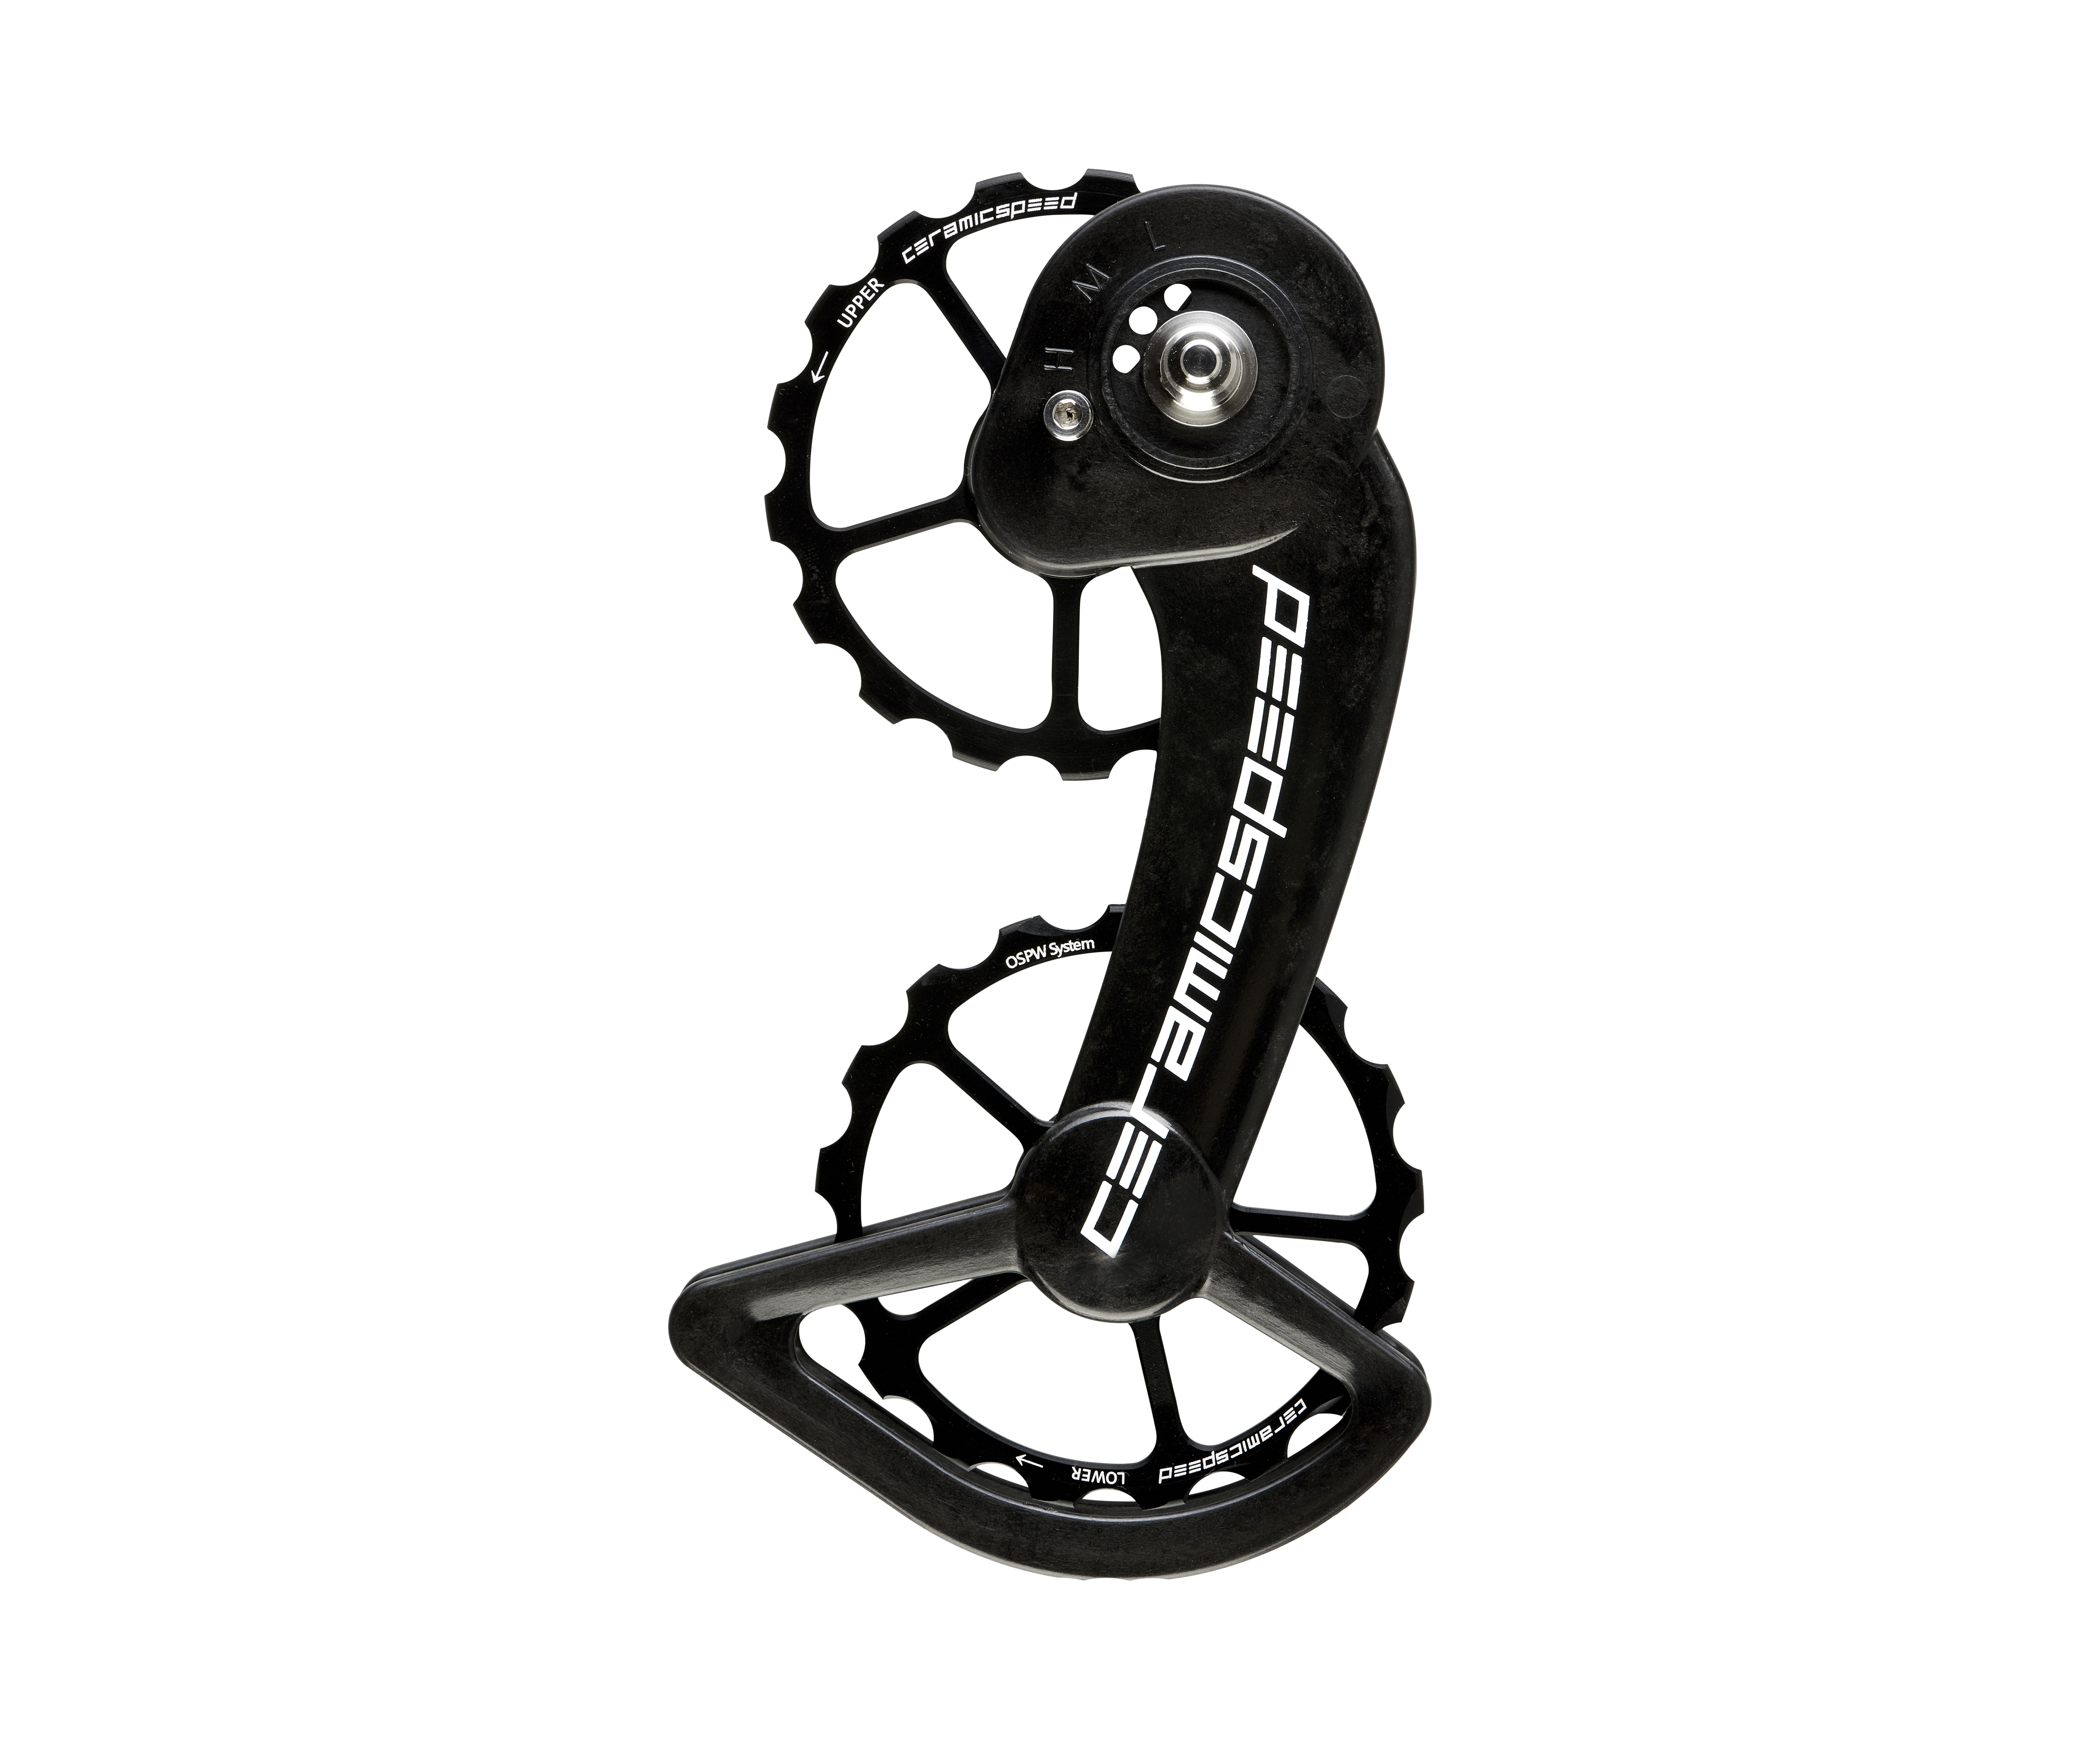 092788d8c26 Oversized Pulley Wheel Systems (OSPW Systems)   CeramicSpeed